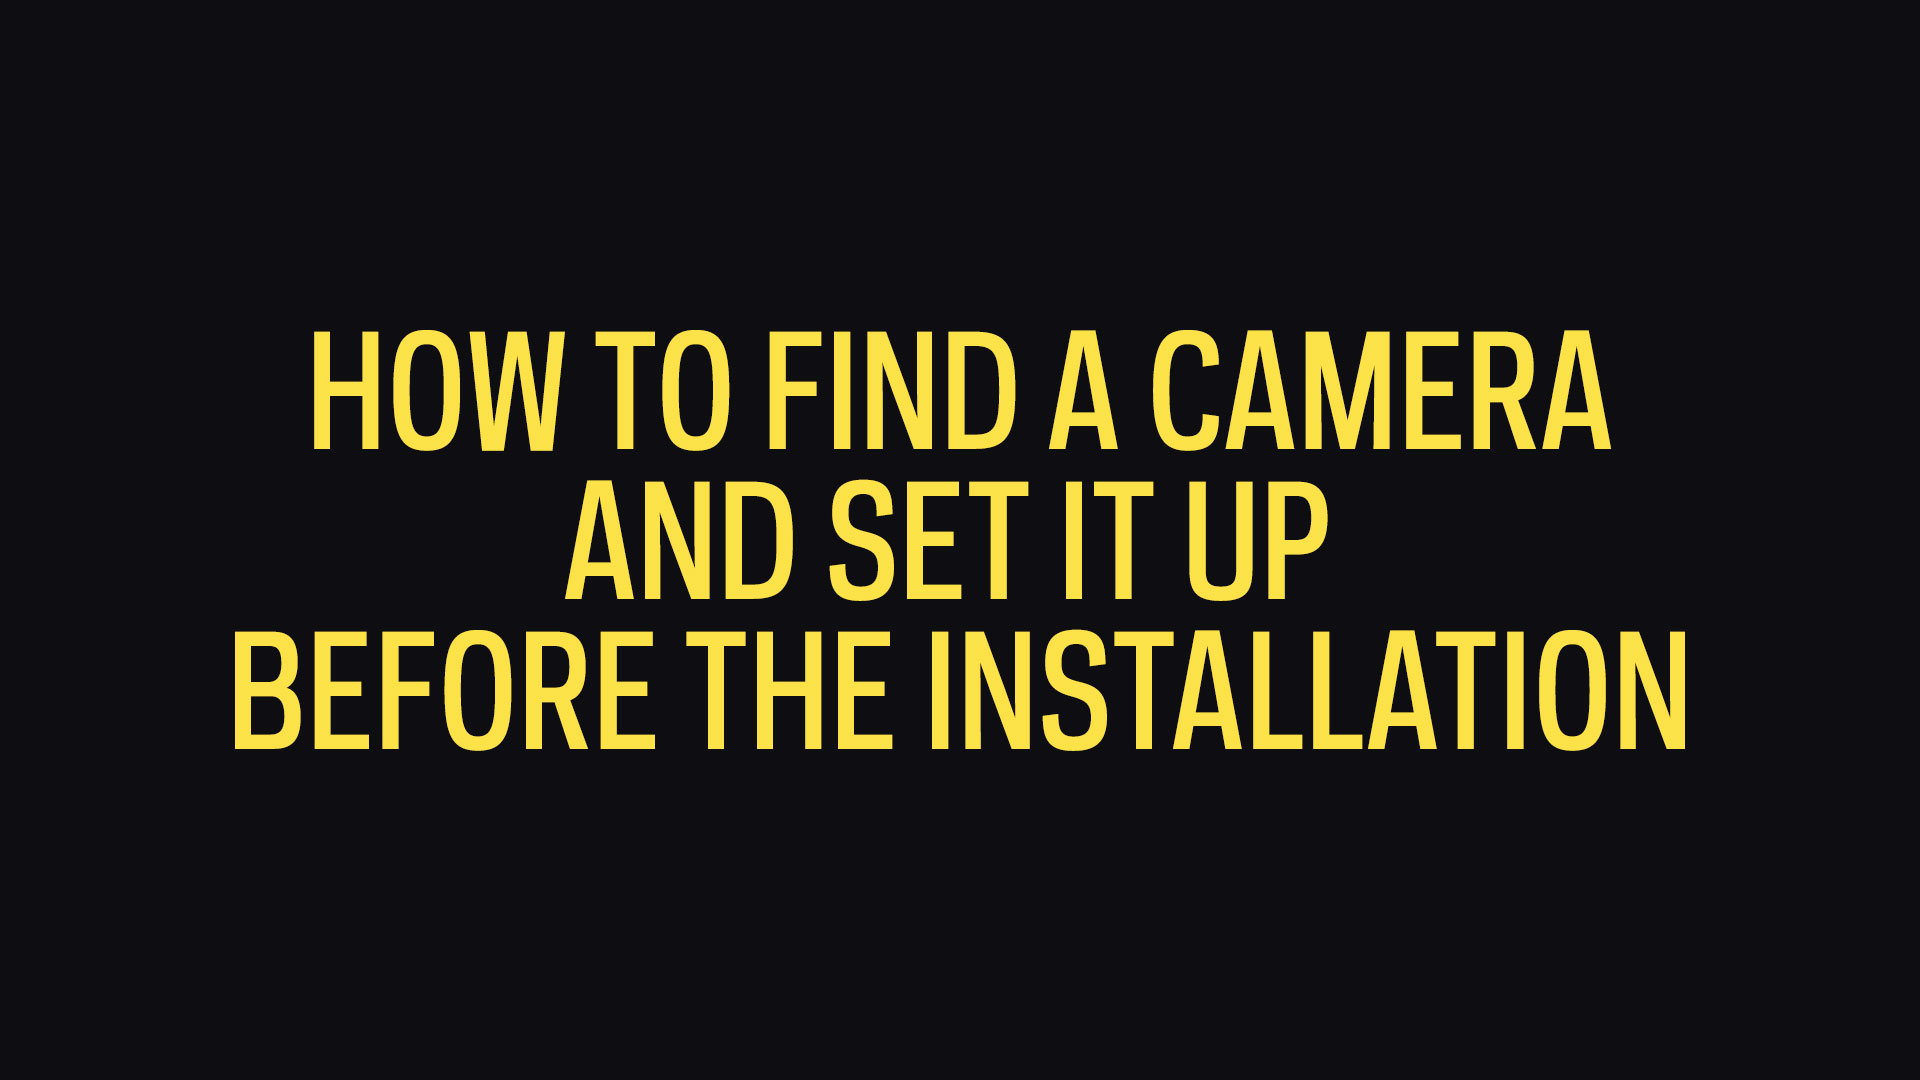 How To Find A Camera And Set It UP Before The Installation